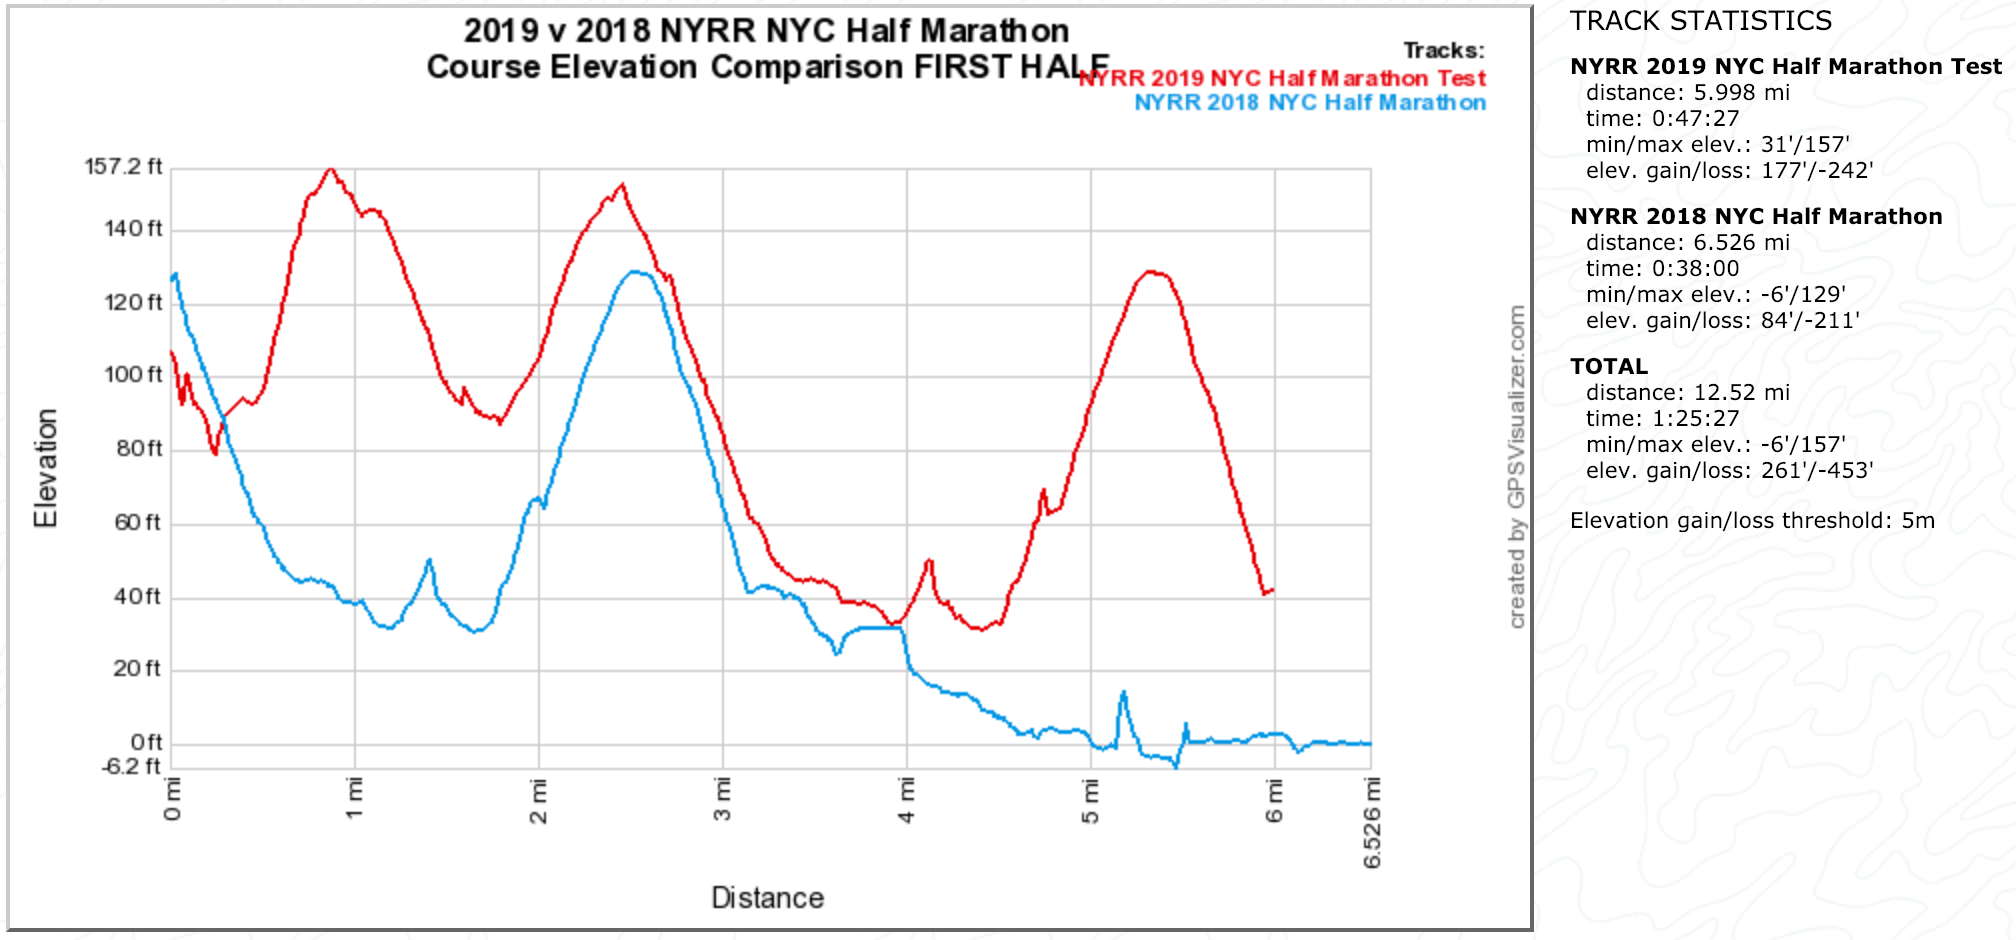 2019 v 2018 NYC Half Marathon Course Elevation Comparison First Half